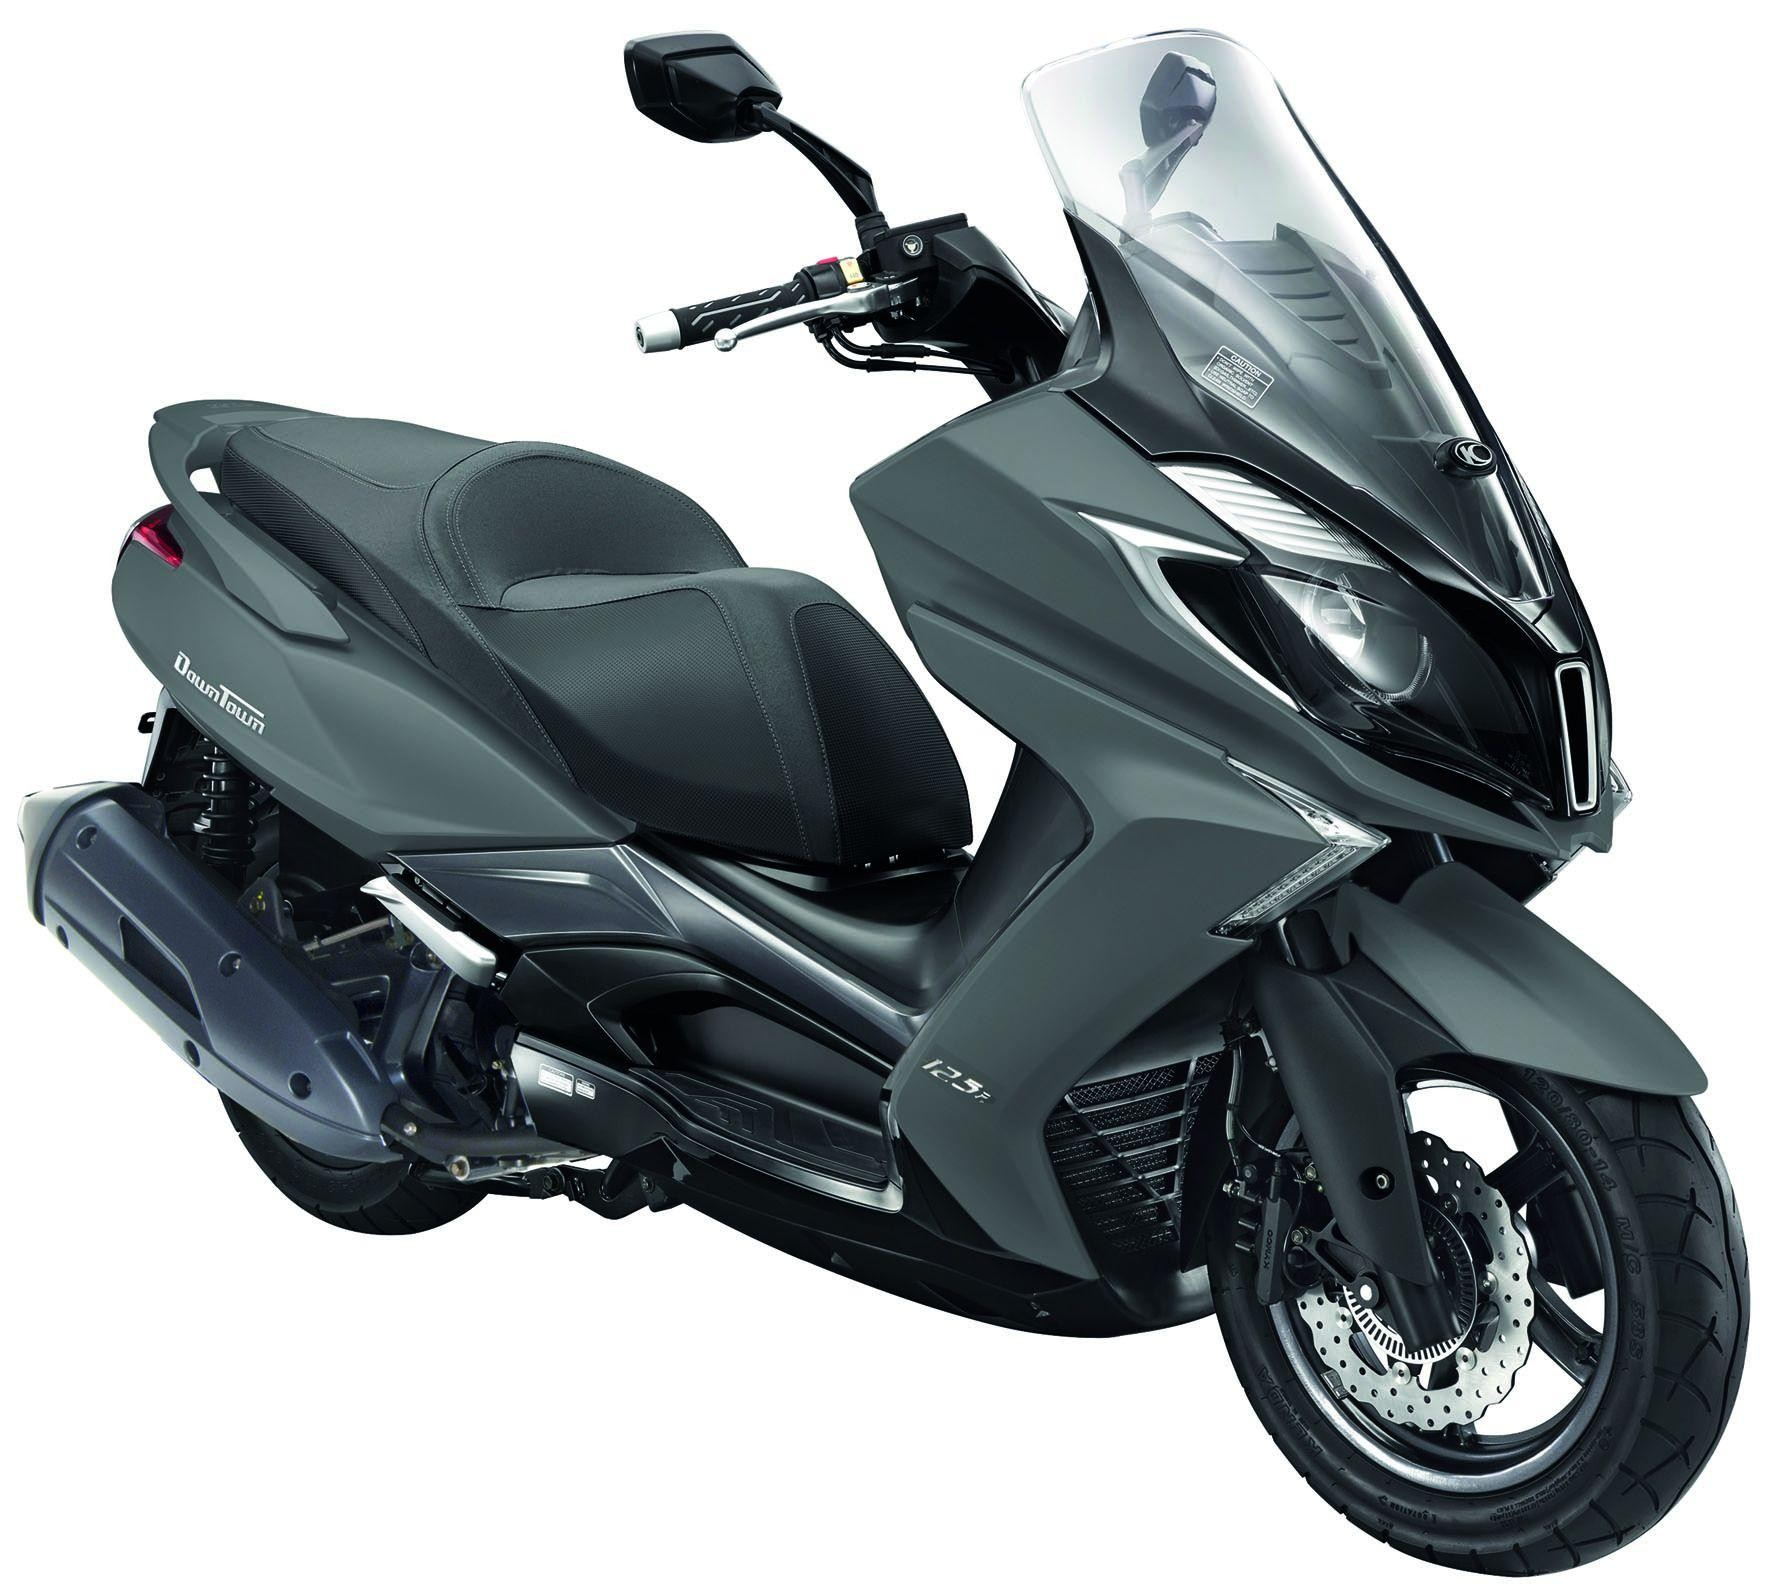 מודרני Buy motorbike New vehicle/bike KYMCO Downtown 125 i ABS Rupp Motos EU-99